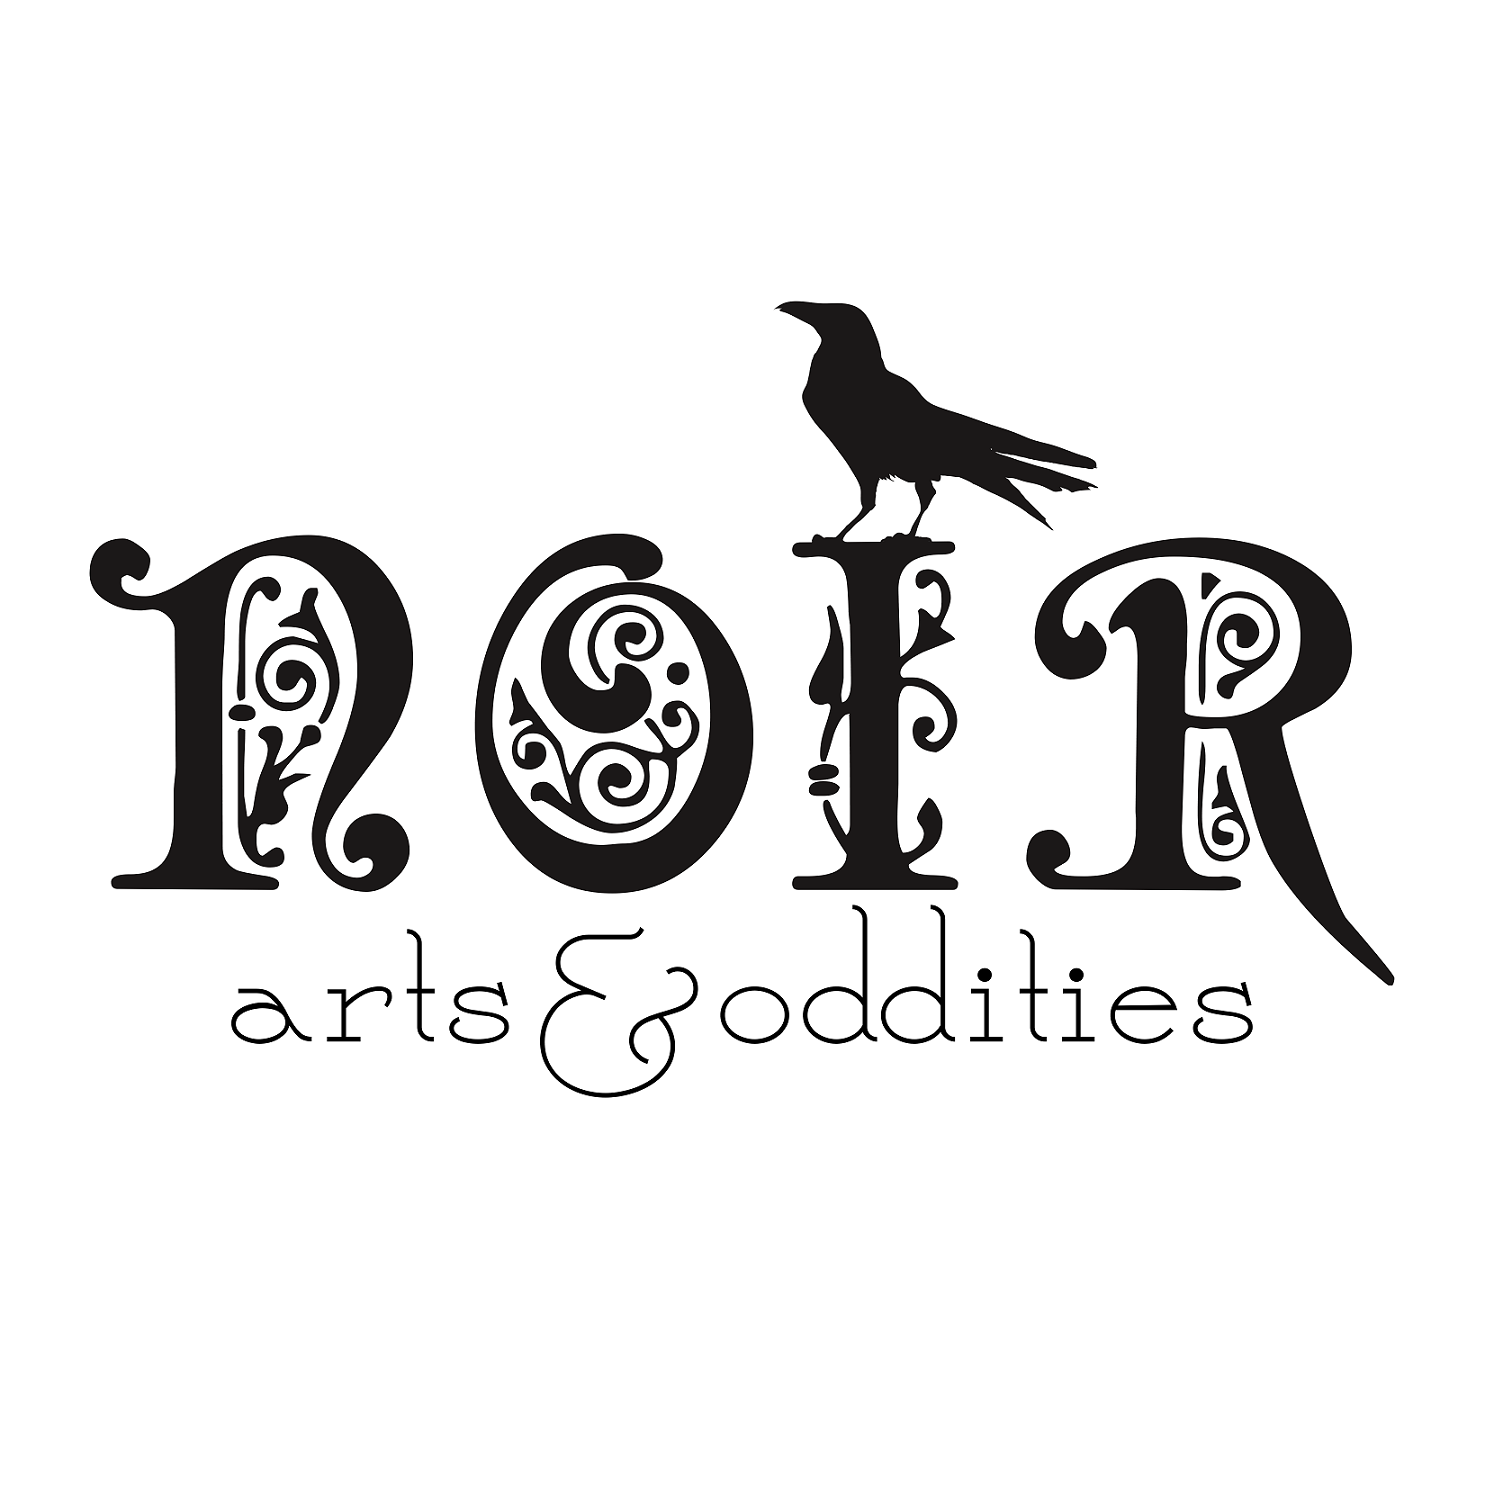 Noir Arts & Oddities image